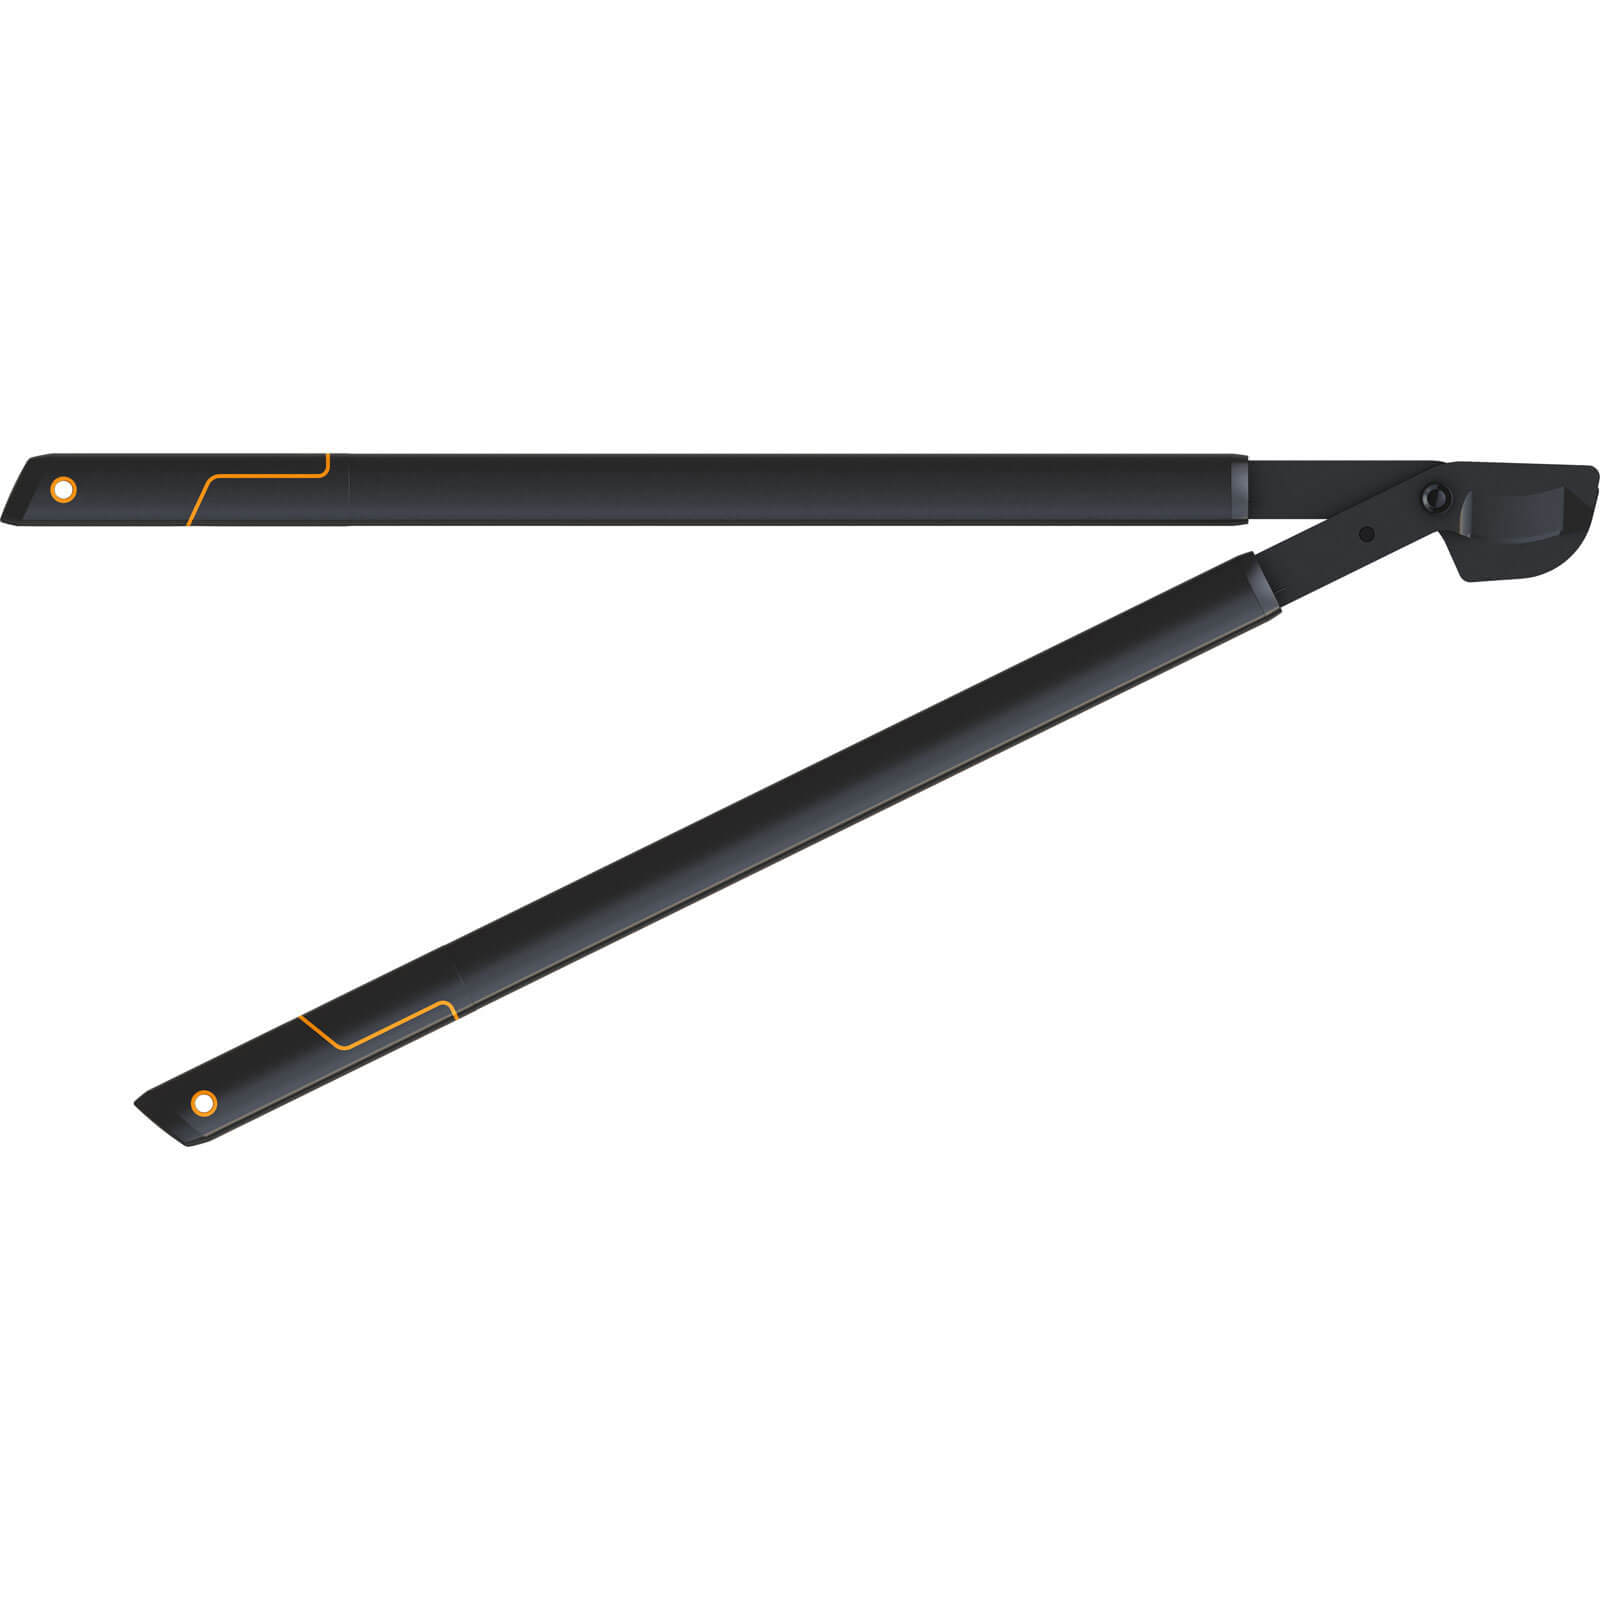 Image of Fiskars L38 SingleStep Large Bypass Loppers with Hook Head 816mm